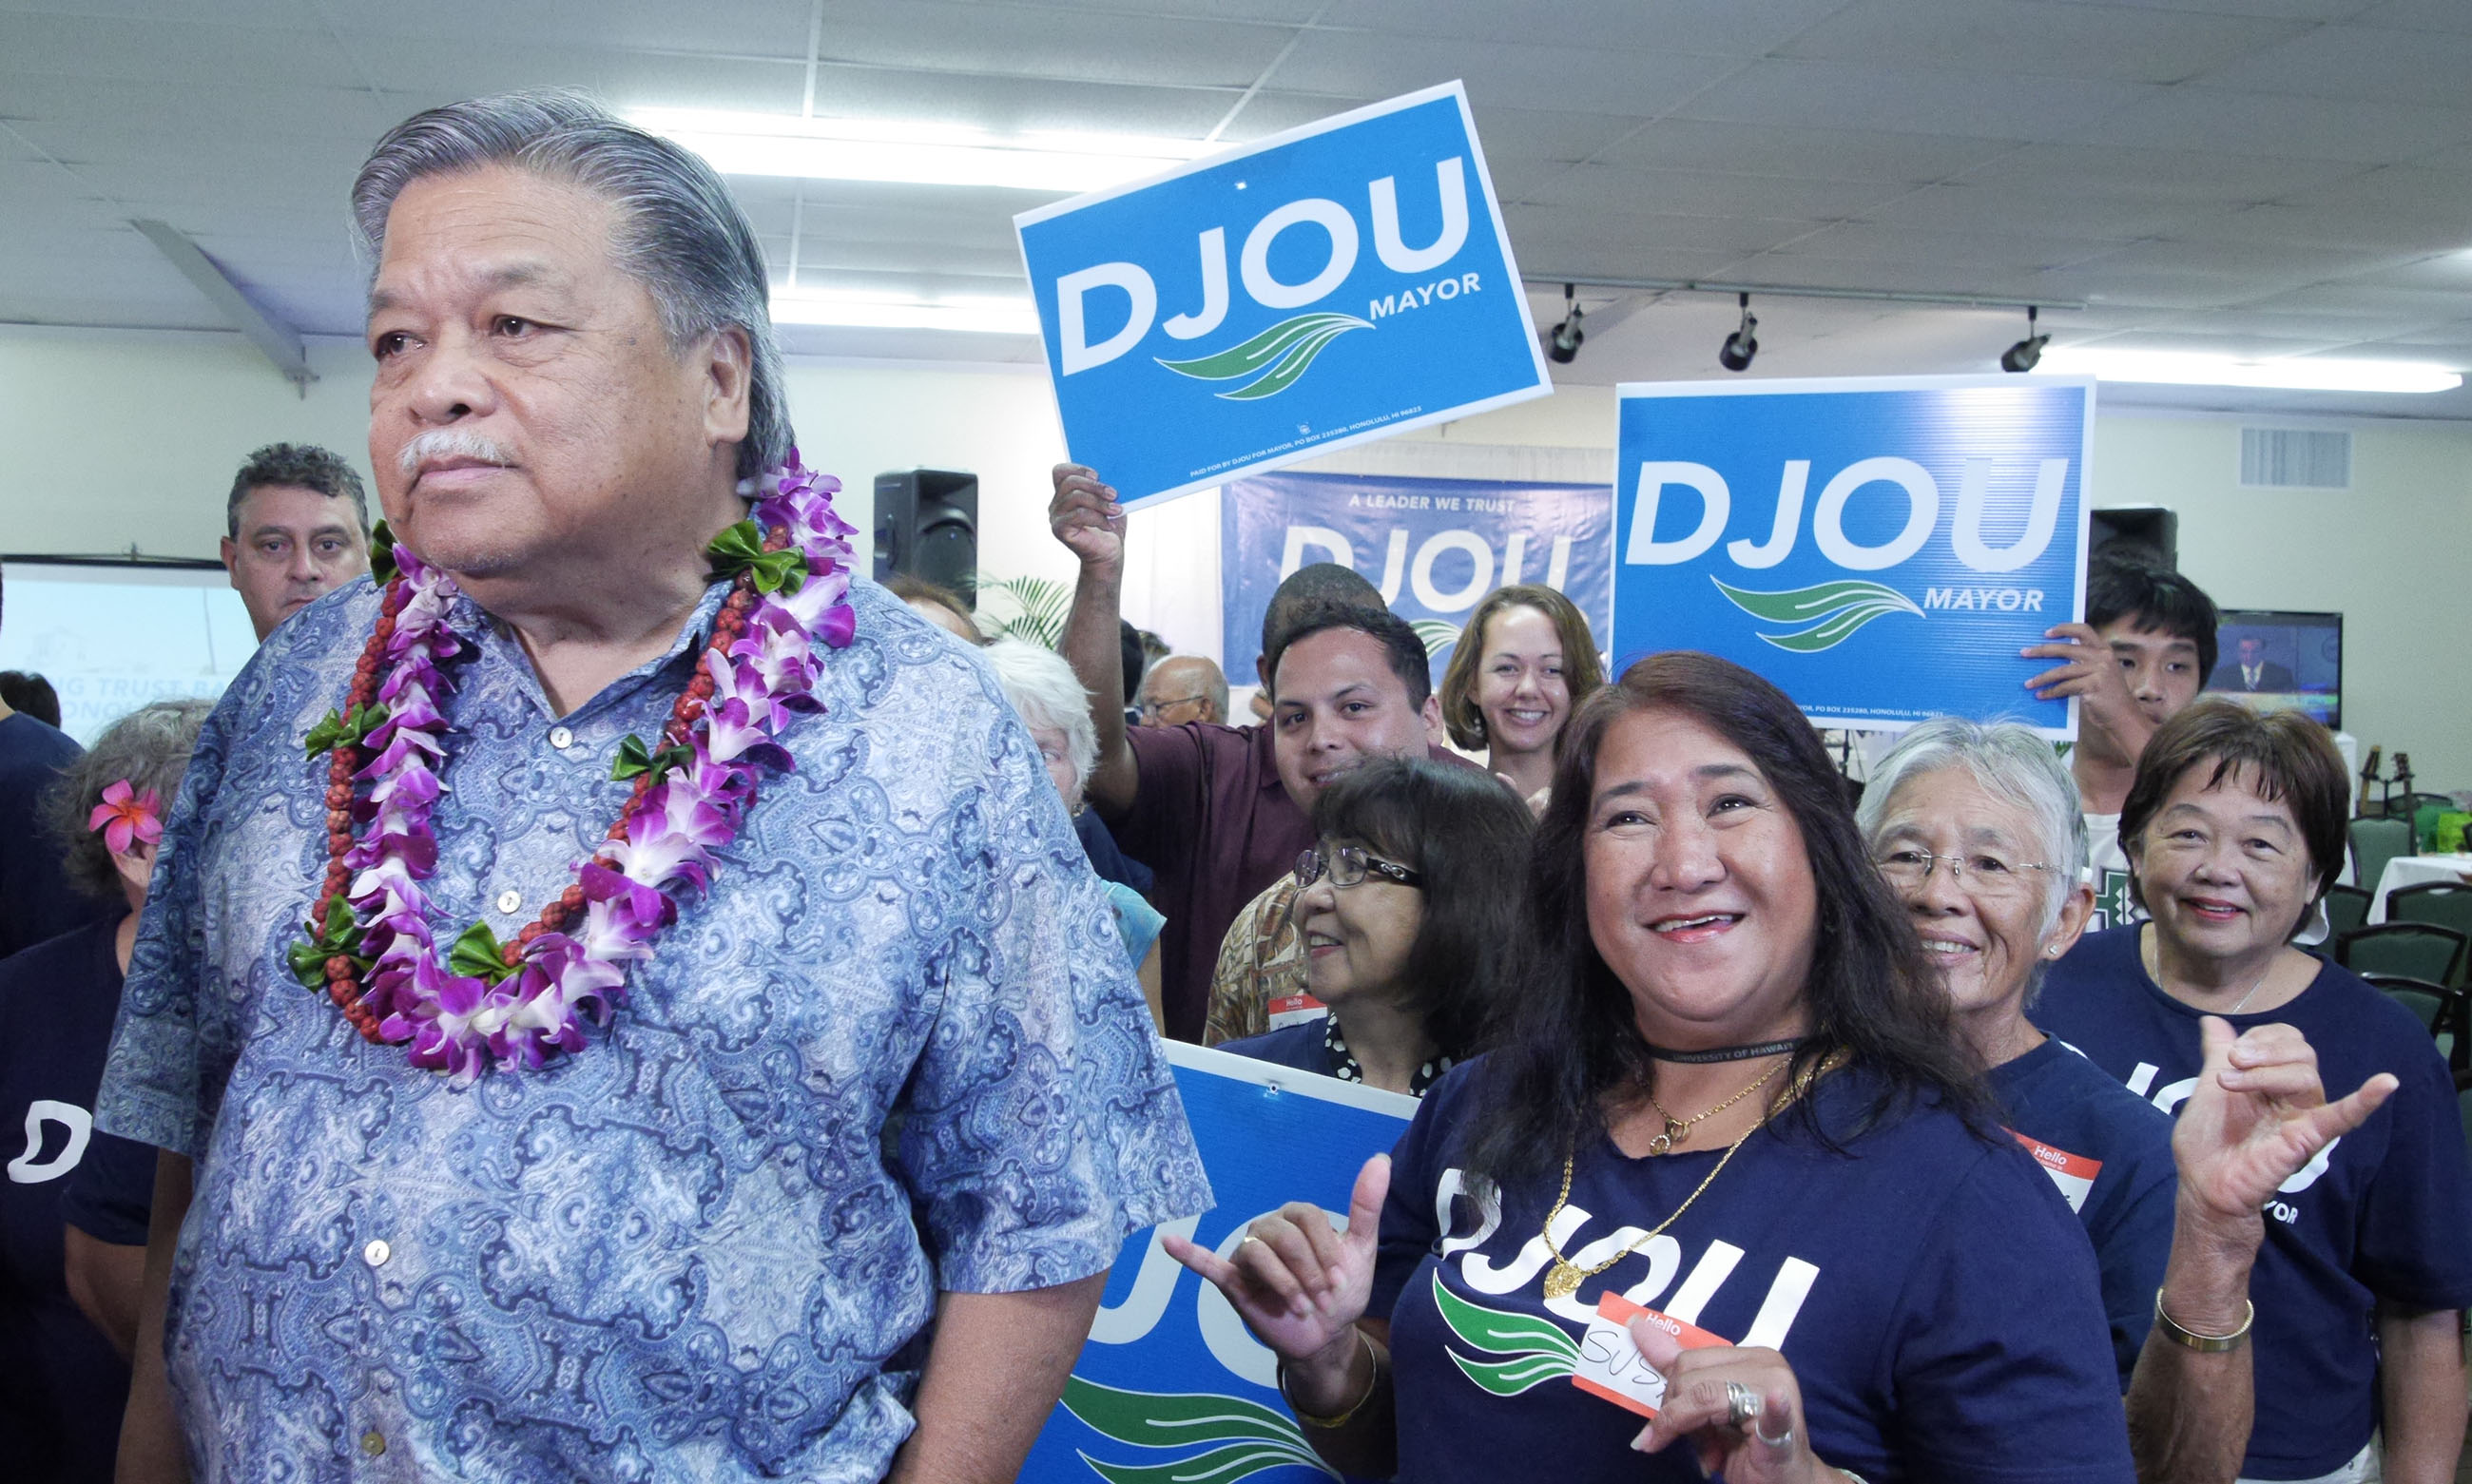 <p>Former Gov. Ben Cayetano joined other supporters of Charles Djou, some of whom were surprised their candidate wasn't pulling away after recent polls showed him with a significant lead in the mayor's race. (Ronen Zilberman/Civil Beat)</p>